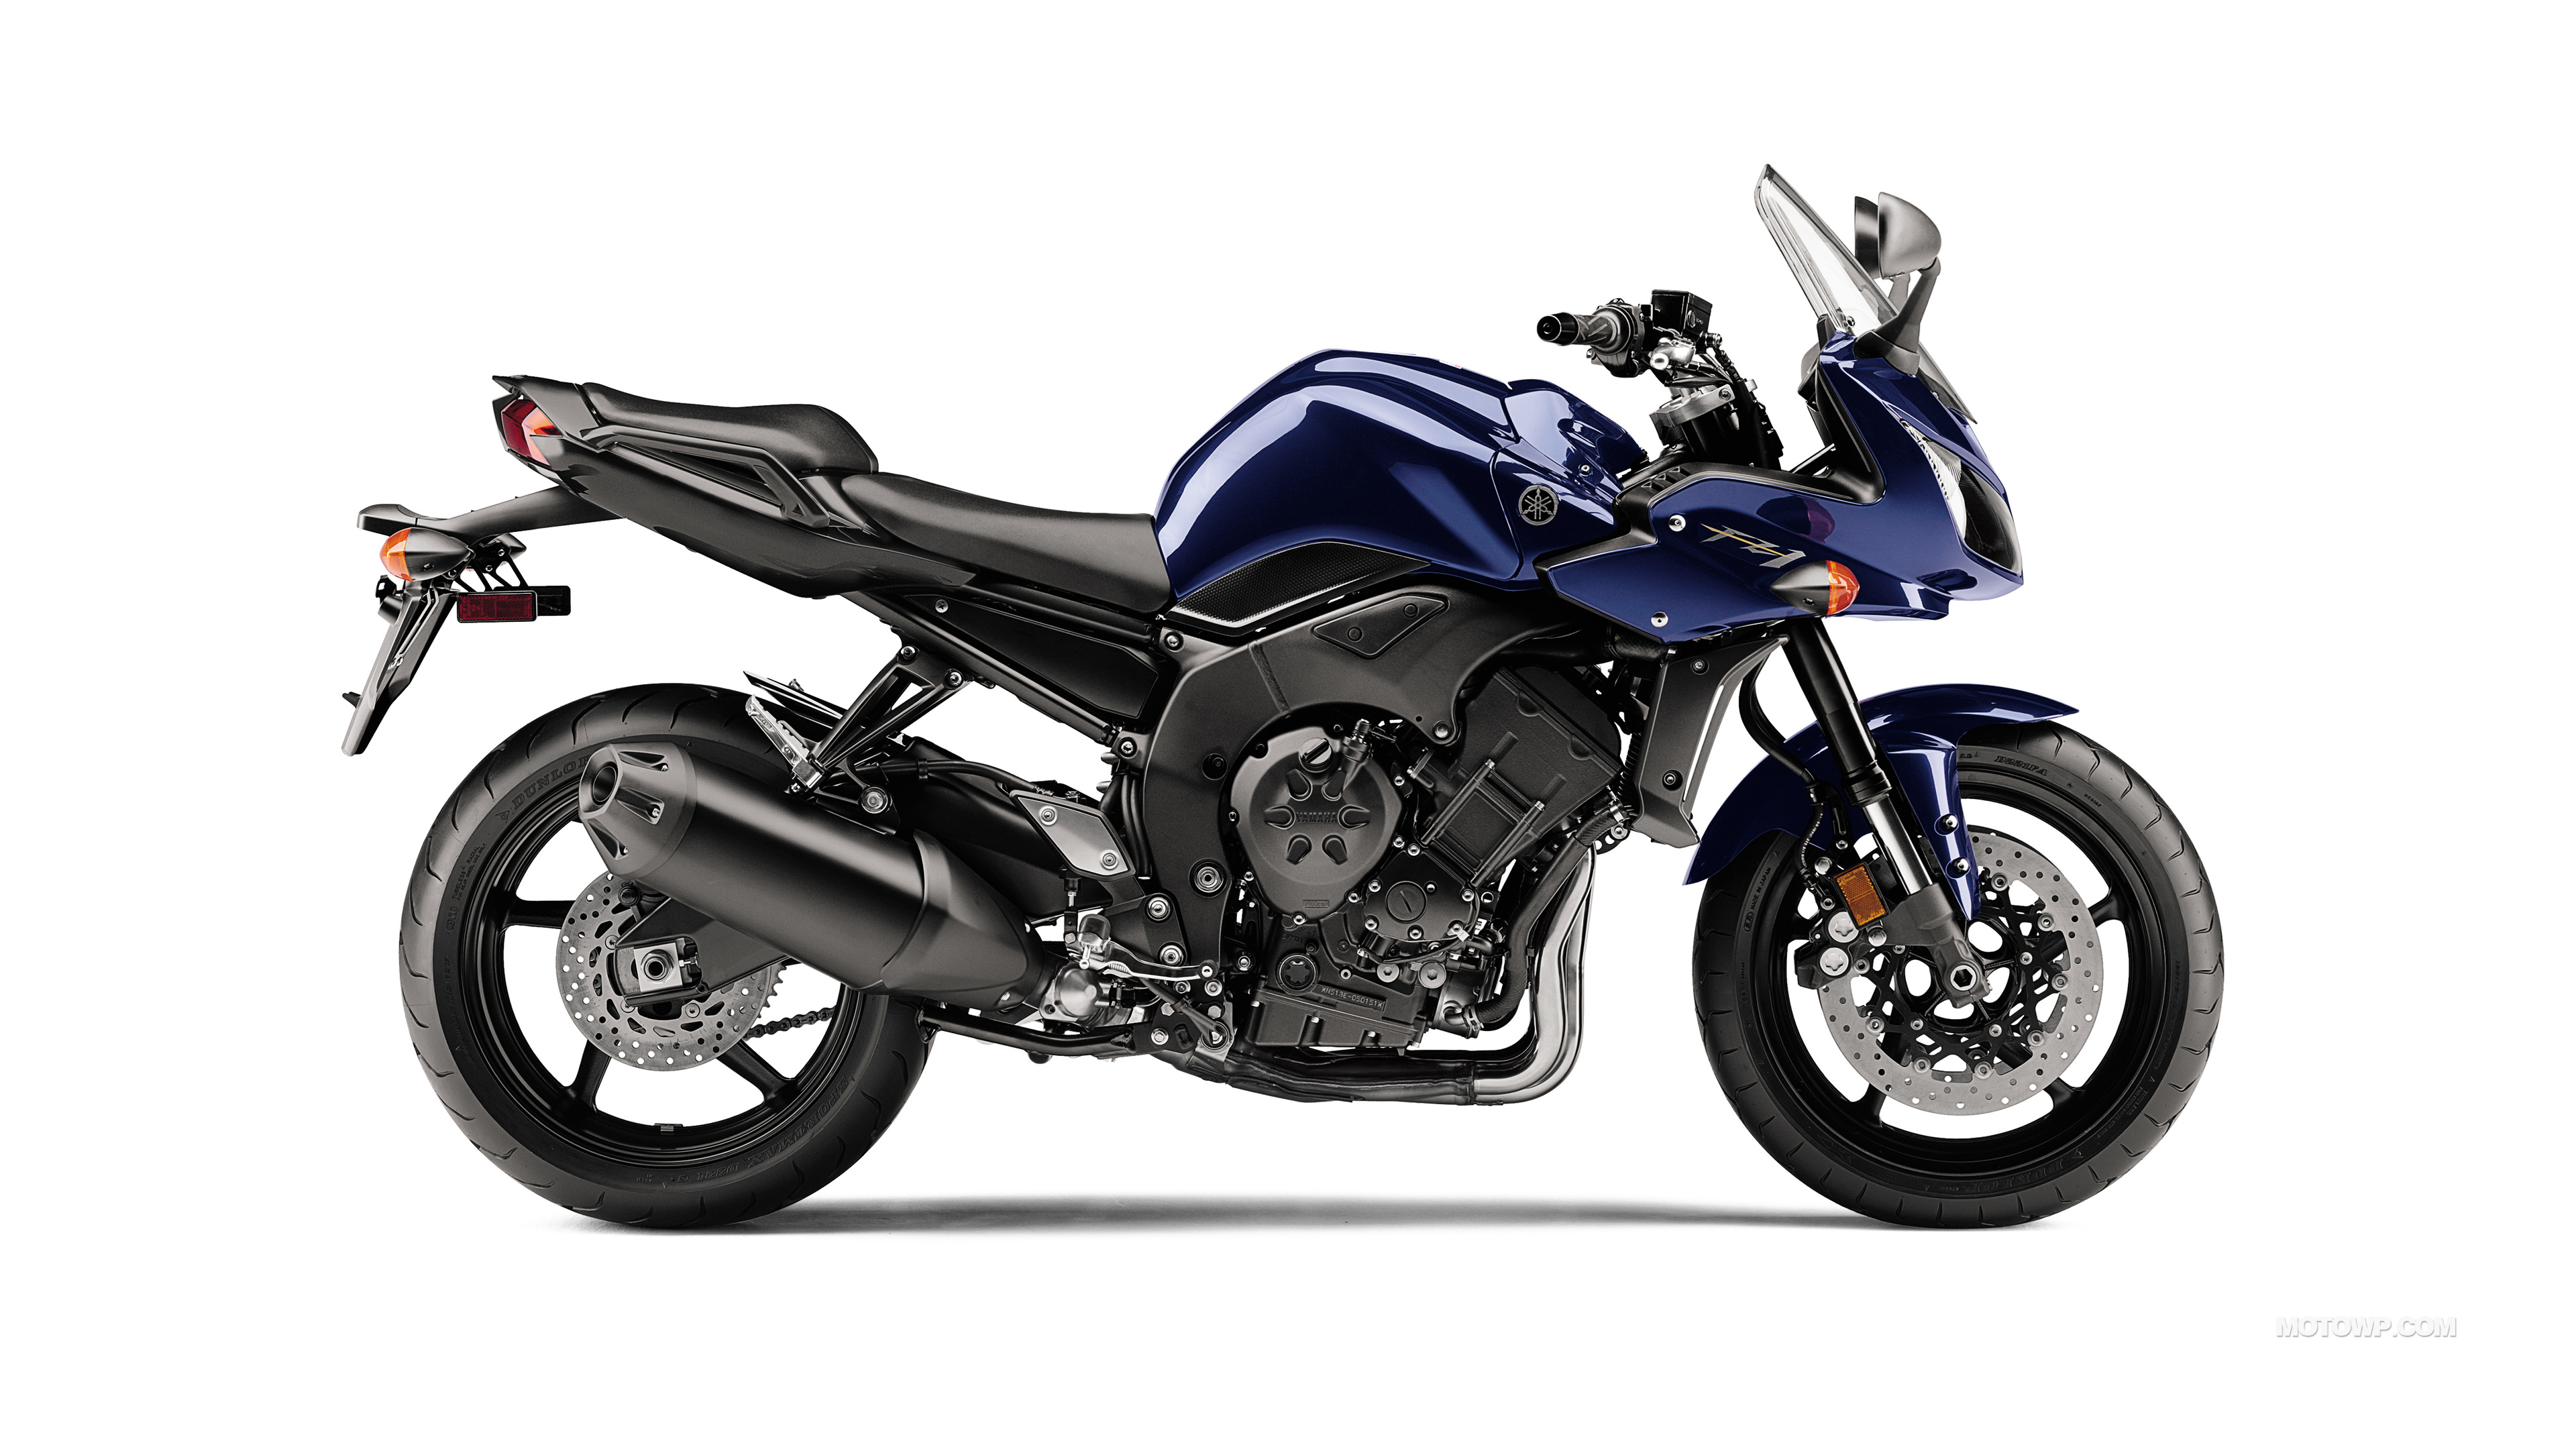 Yamaha fz1 photo - 1